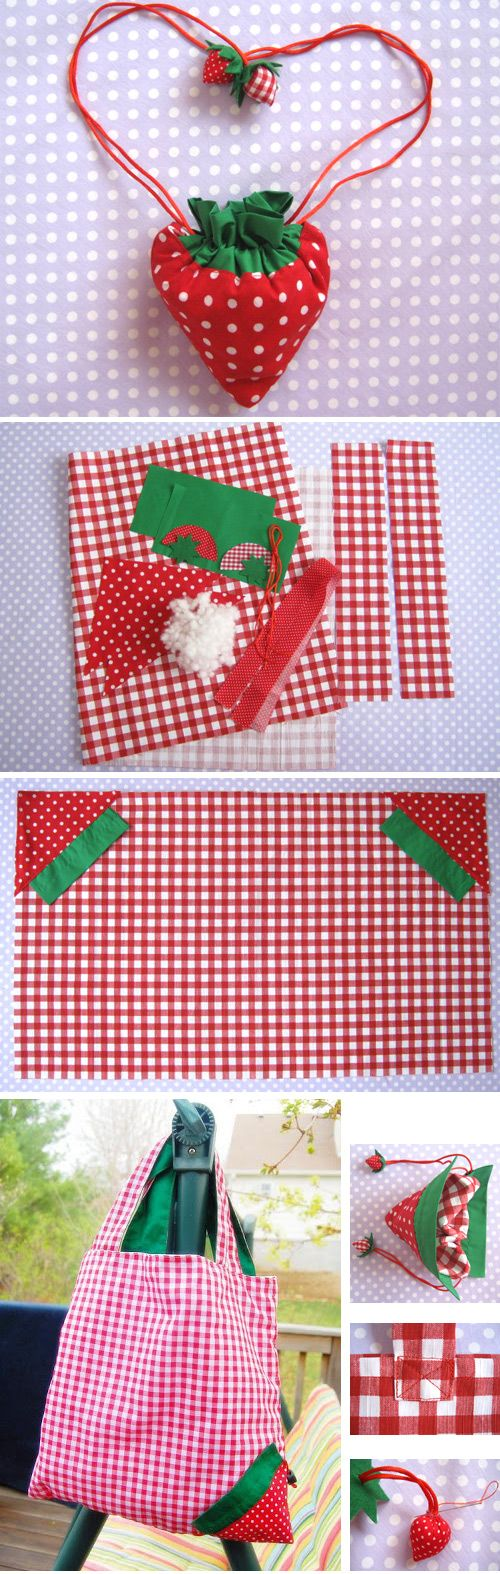 Strawberry Shopper Bag Tutorial www.handmadiya.co...